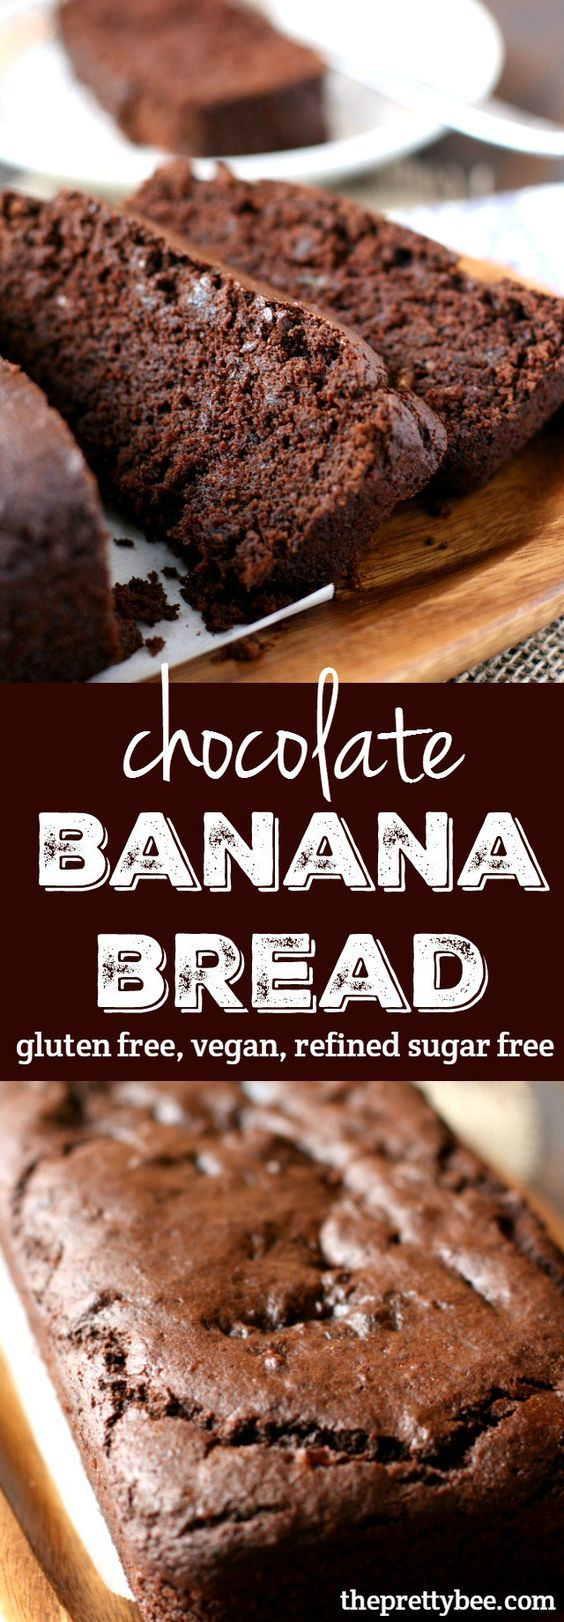 A delicious twist on banana bread – rich and chocolatey, but healthier, too – this bread is gluten free and refined sugar free!